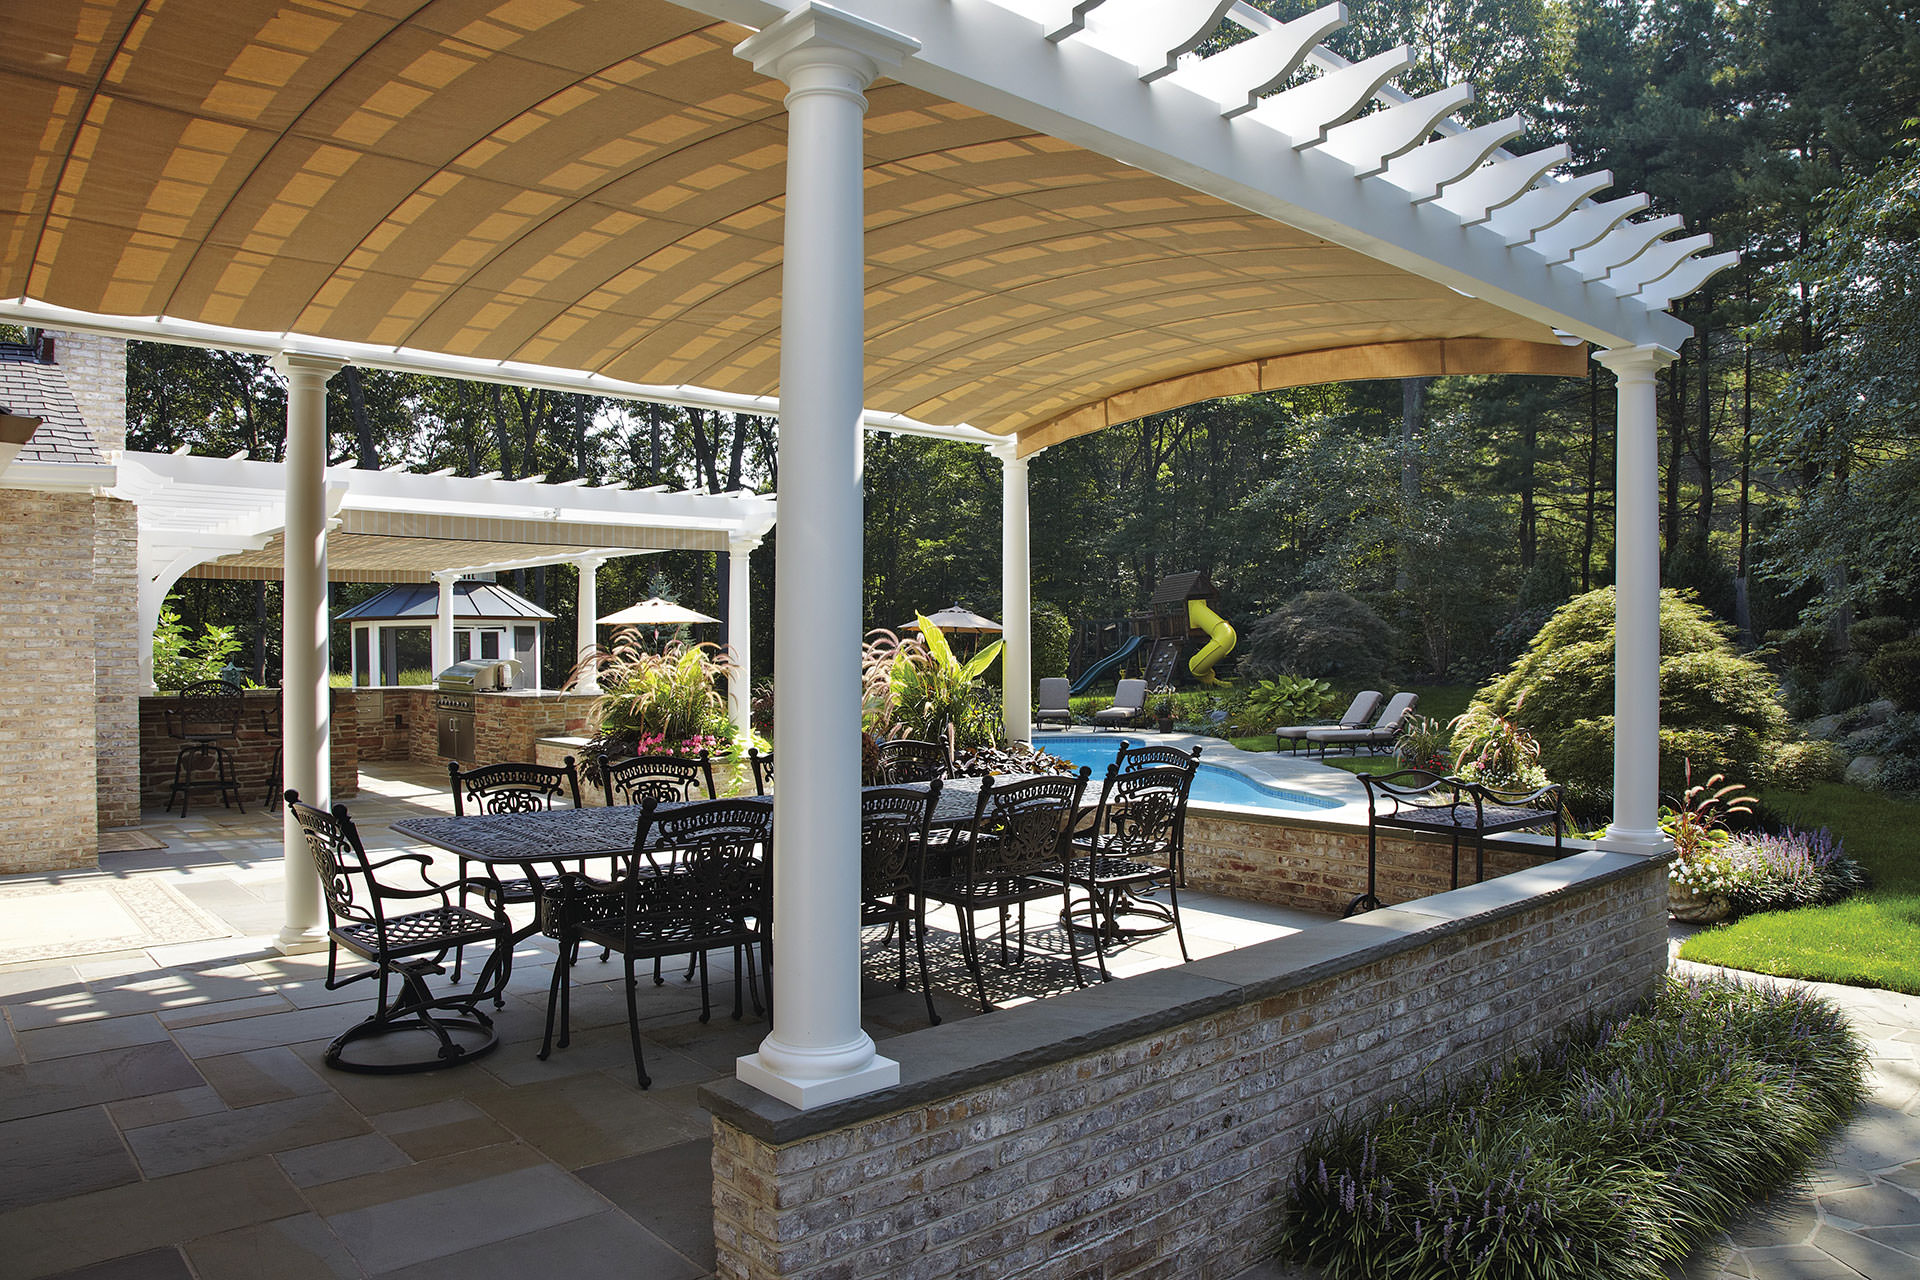 Arched Retractable Awnings in Oyster Bay | ShadeFX Canopies